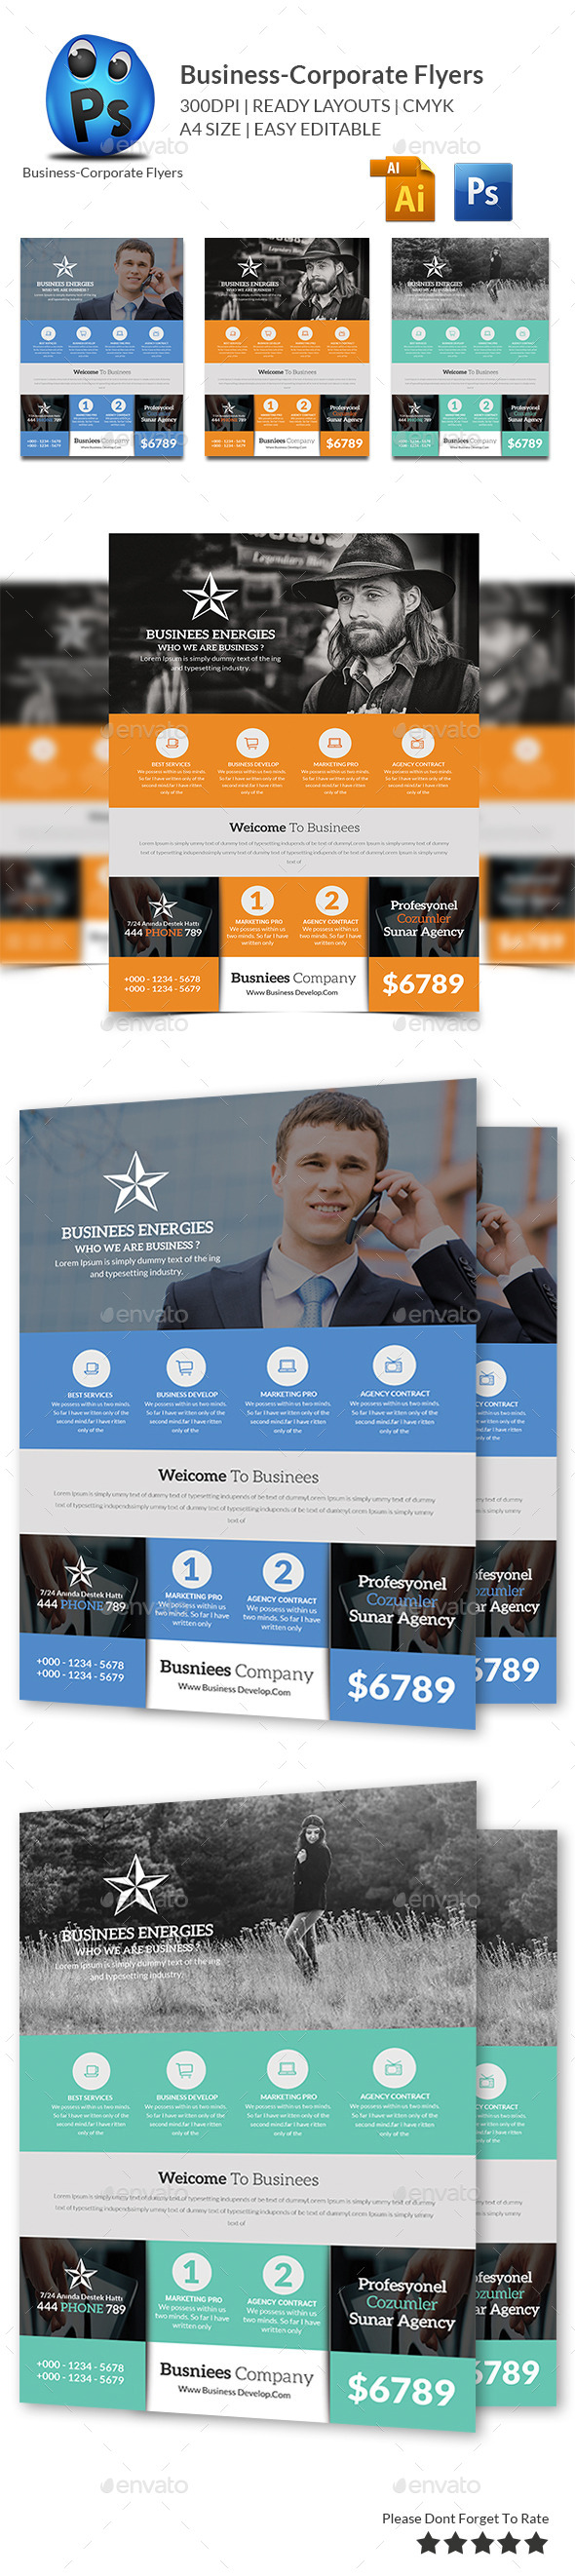 Smart Business Flyers Template - Corporate Flyers